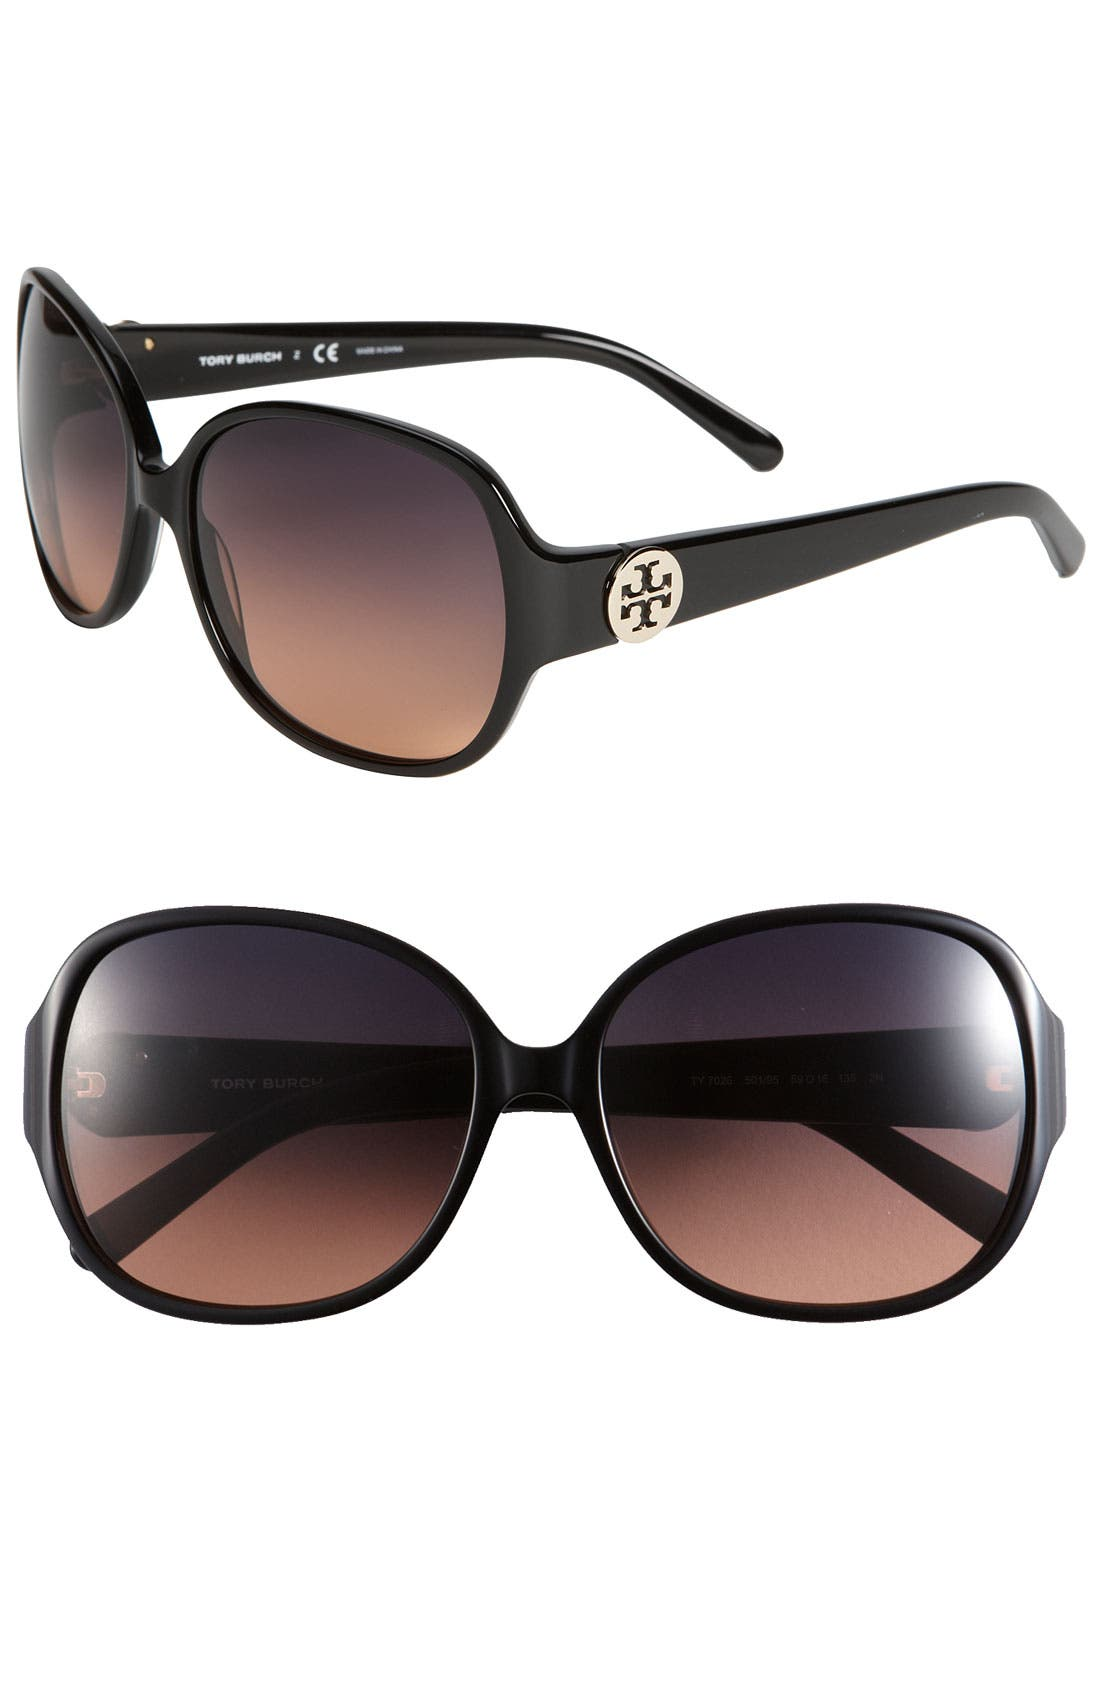 Alternate Image 1 Selected - Tory Burch 59mm 'Disco Logo' Rounded Sunglasses